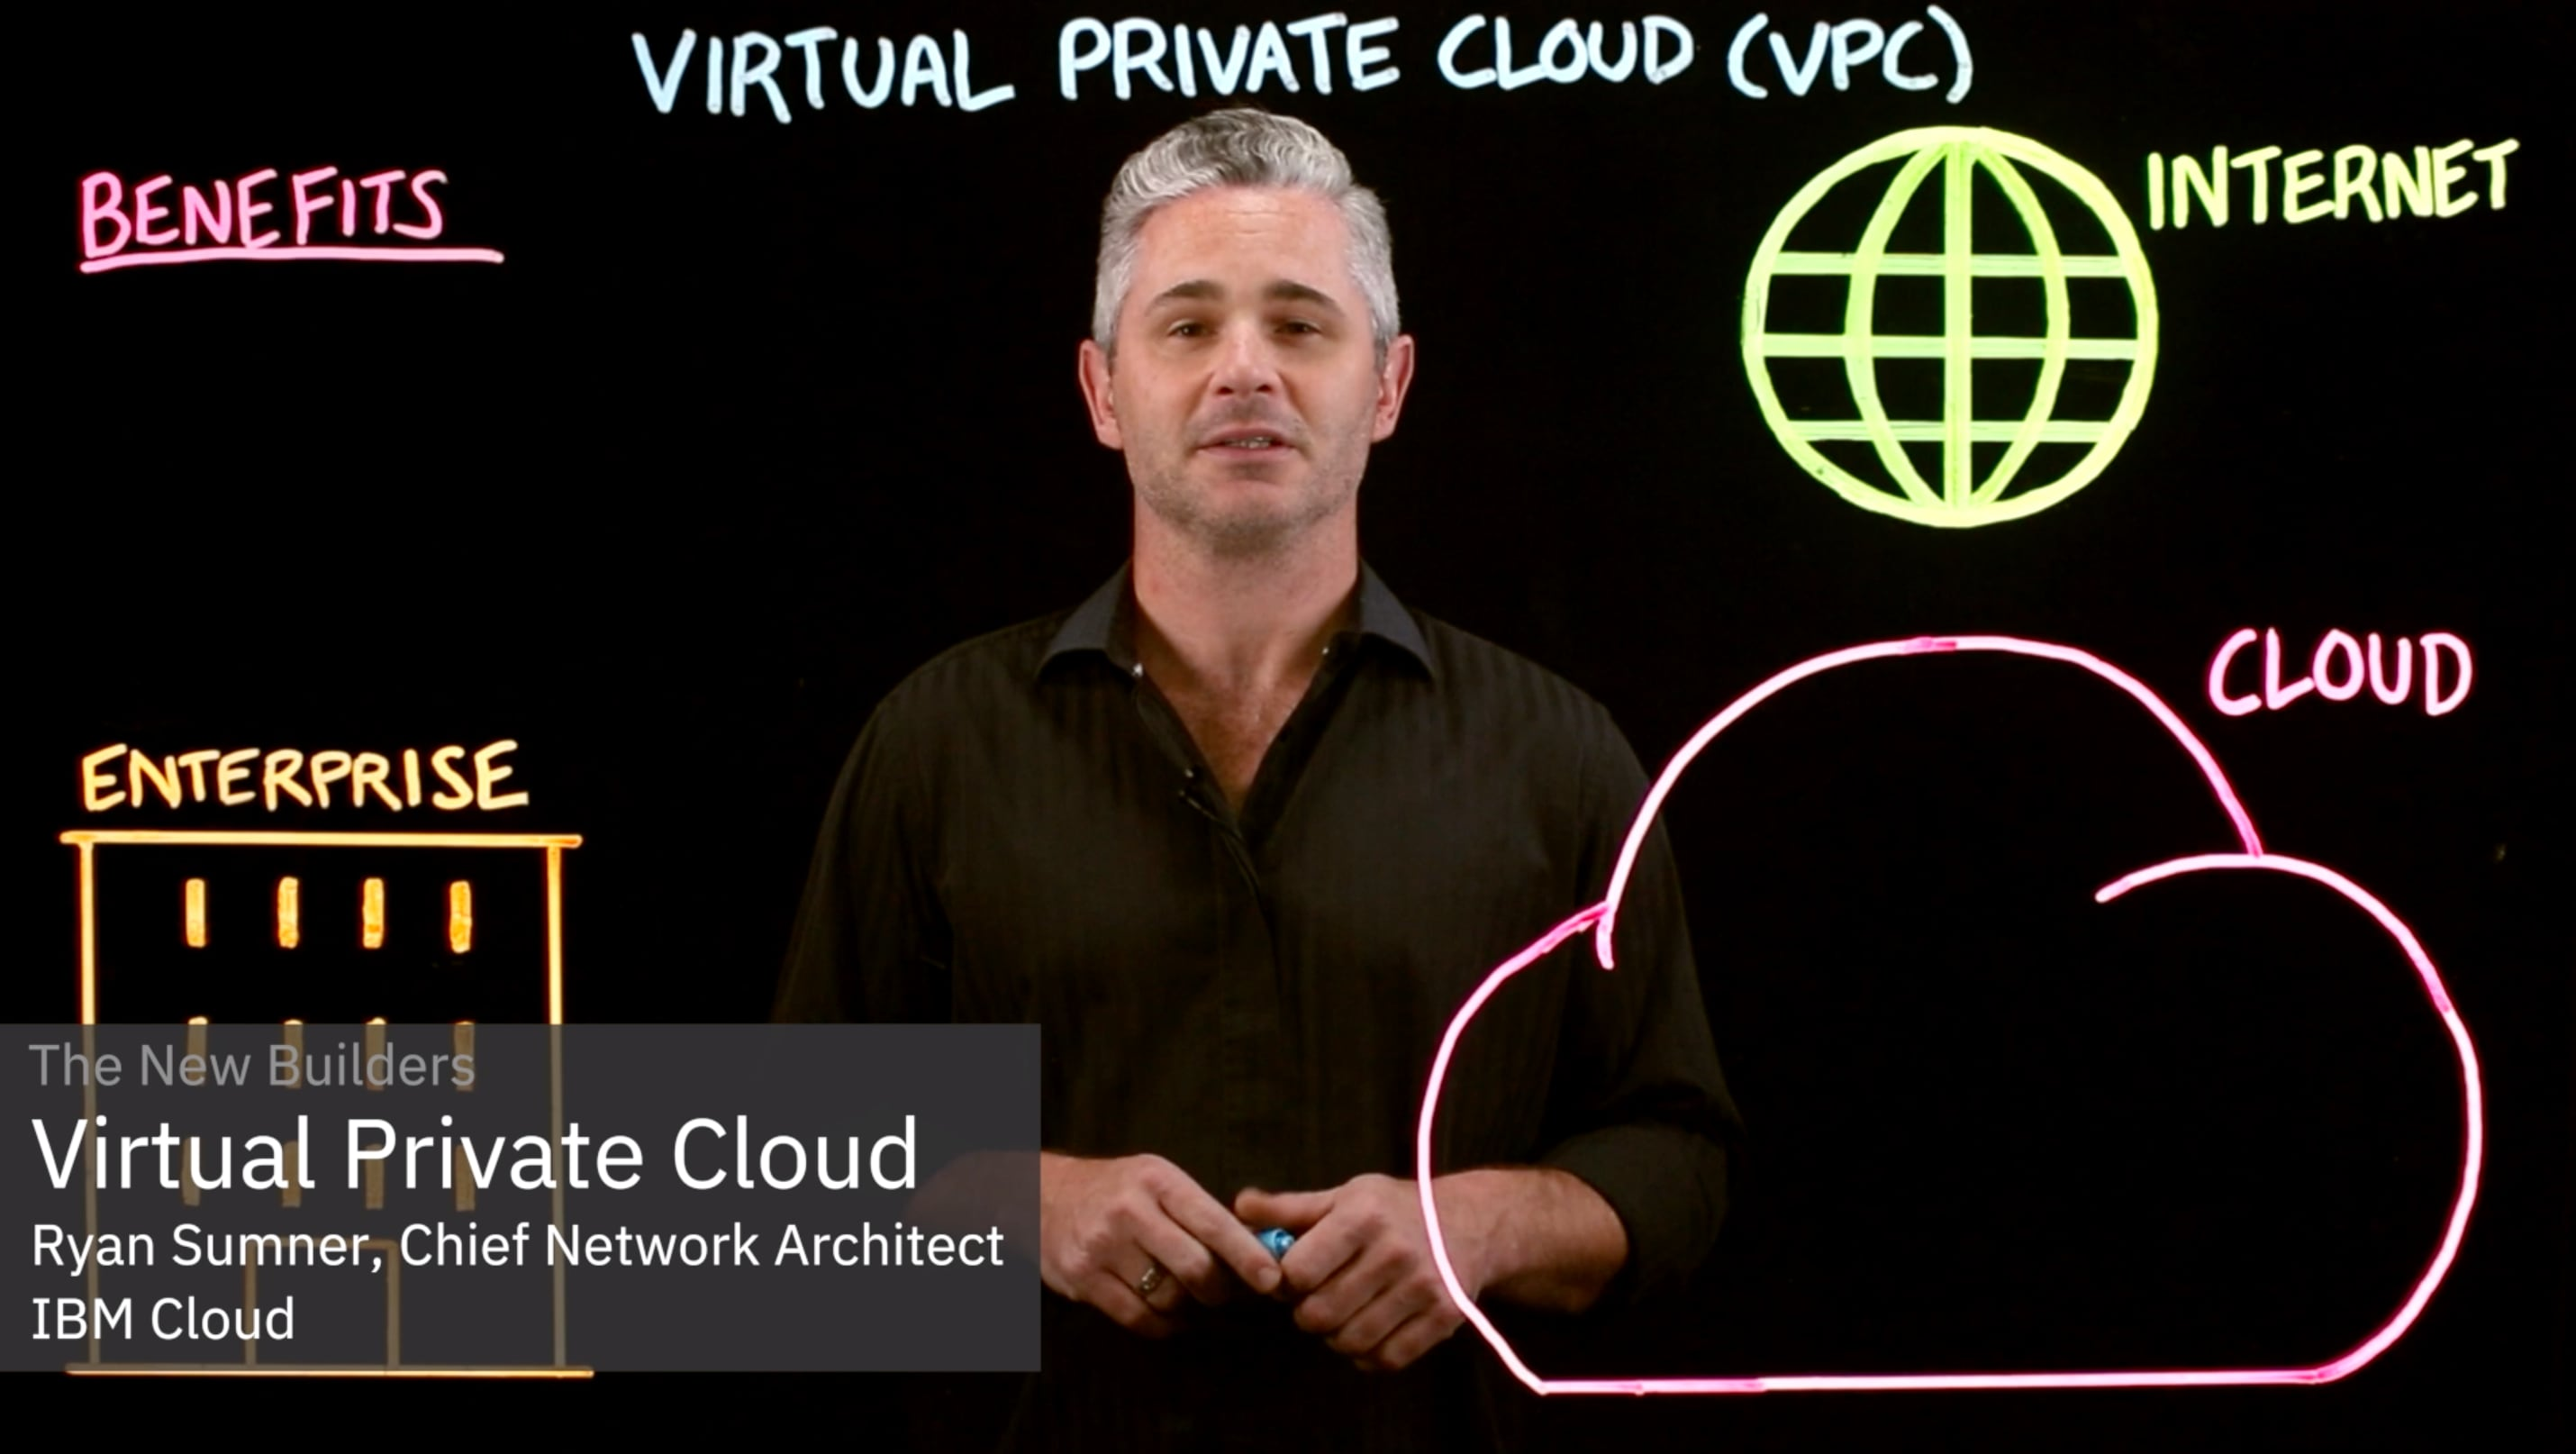 What is a virtual private cloud (VPC)?